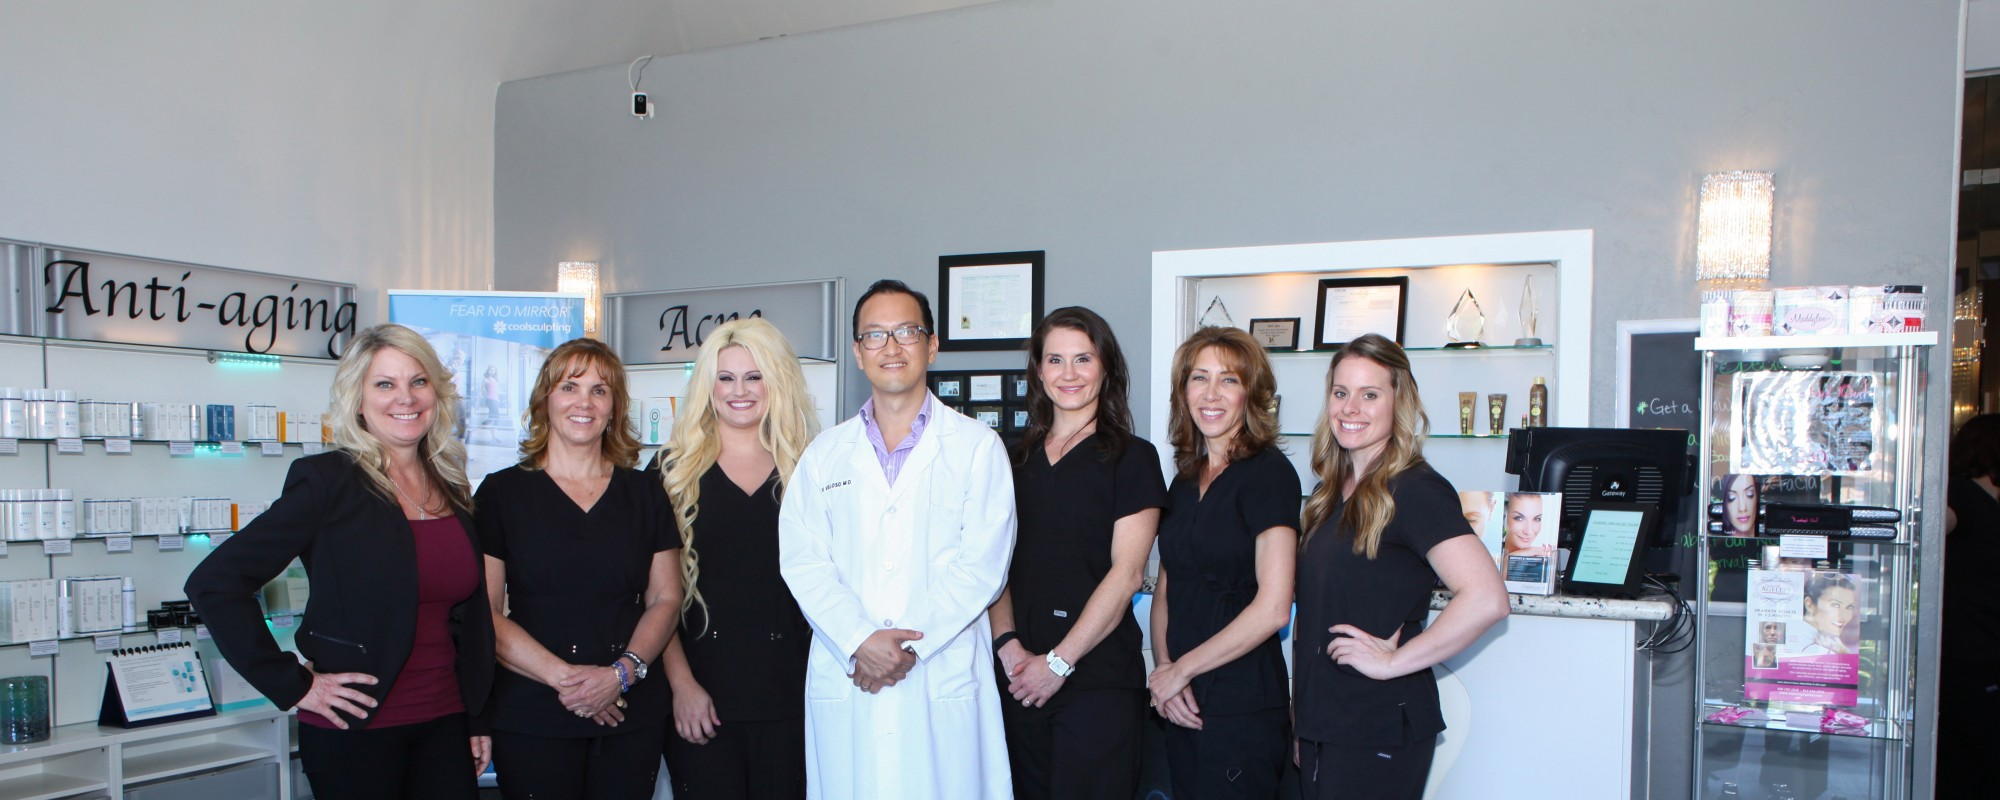 Dr. Veloso is a certified trainer for Botox, Juvederm & Voluma